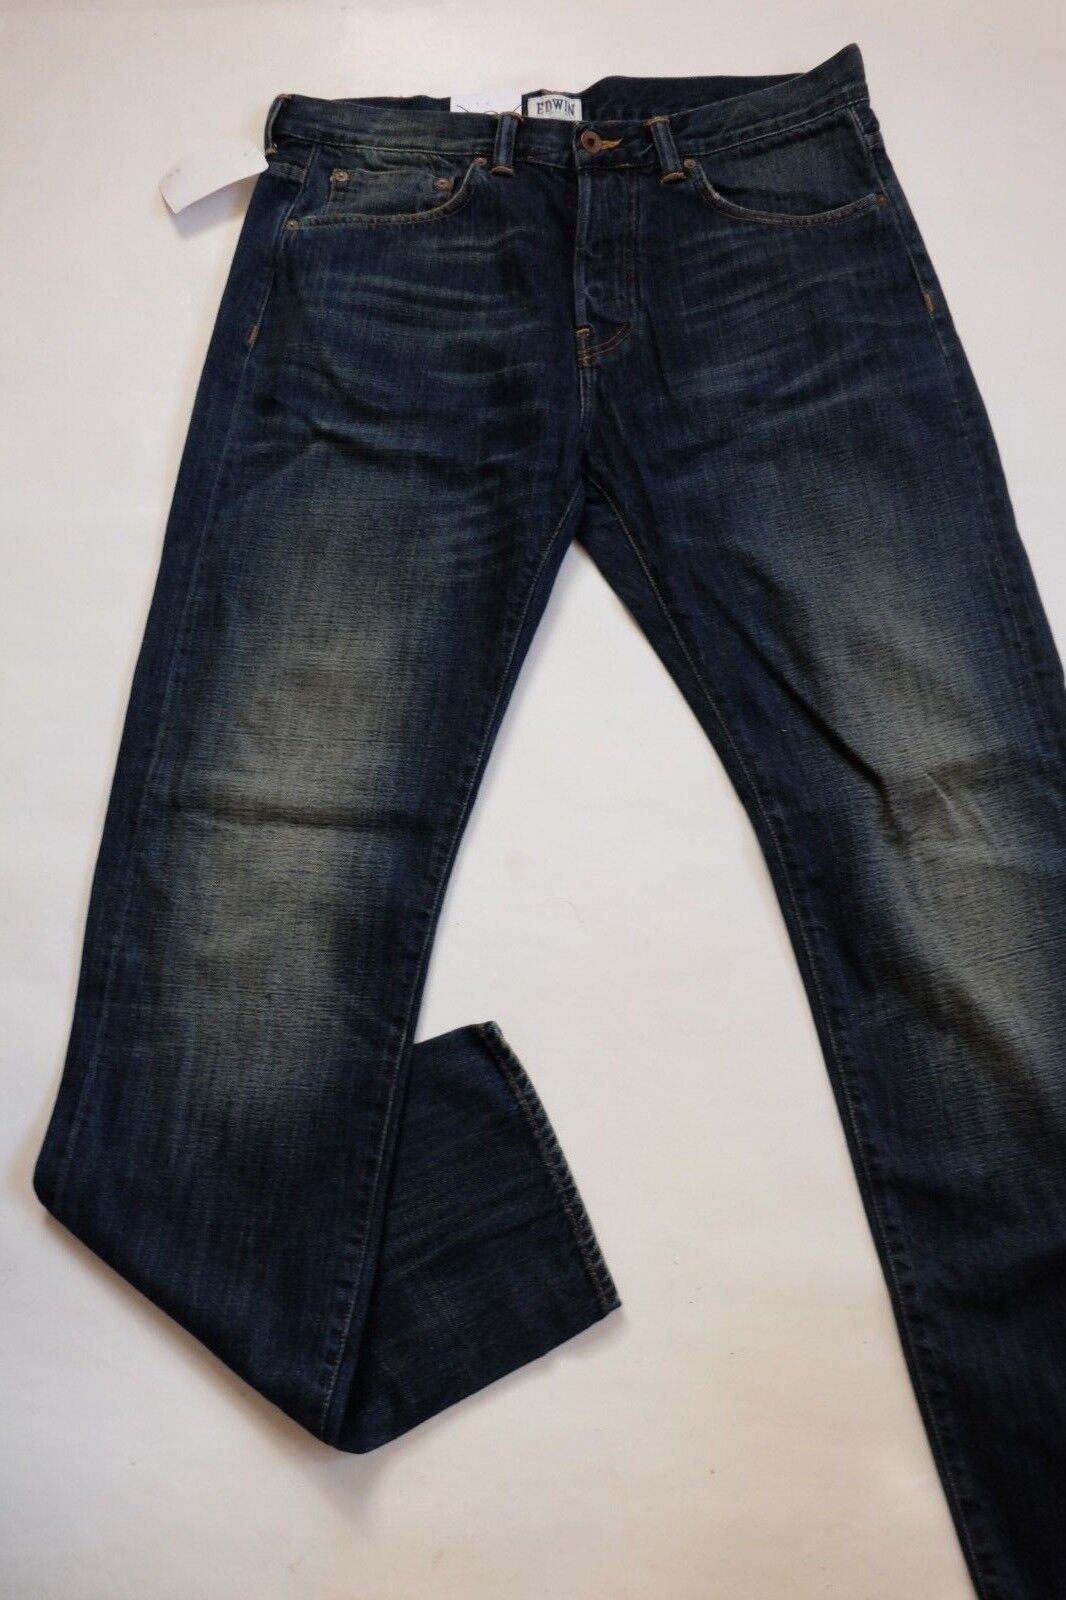 JEANS EDWIN MAN ED 80 SLIM TAPERED (white listed-dark slush) W29 L34 VAL